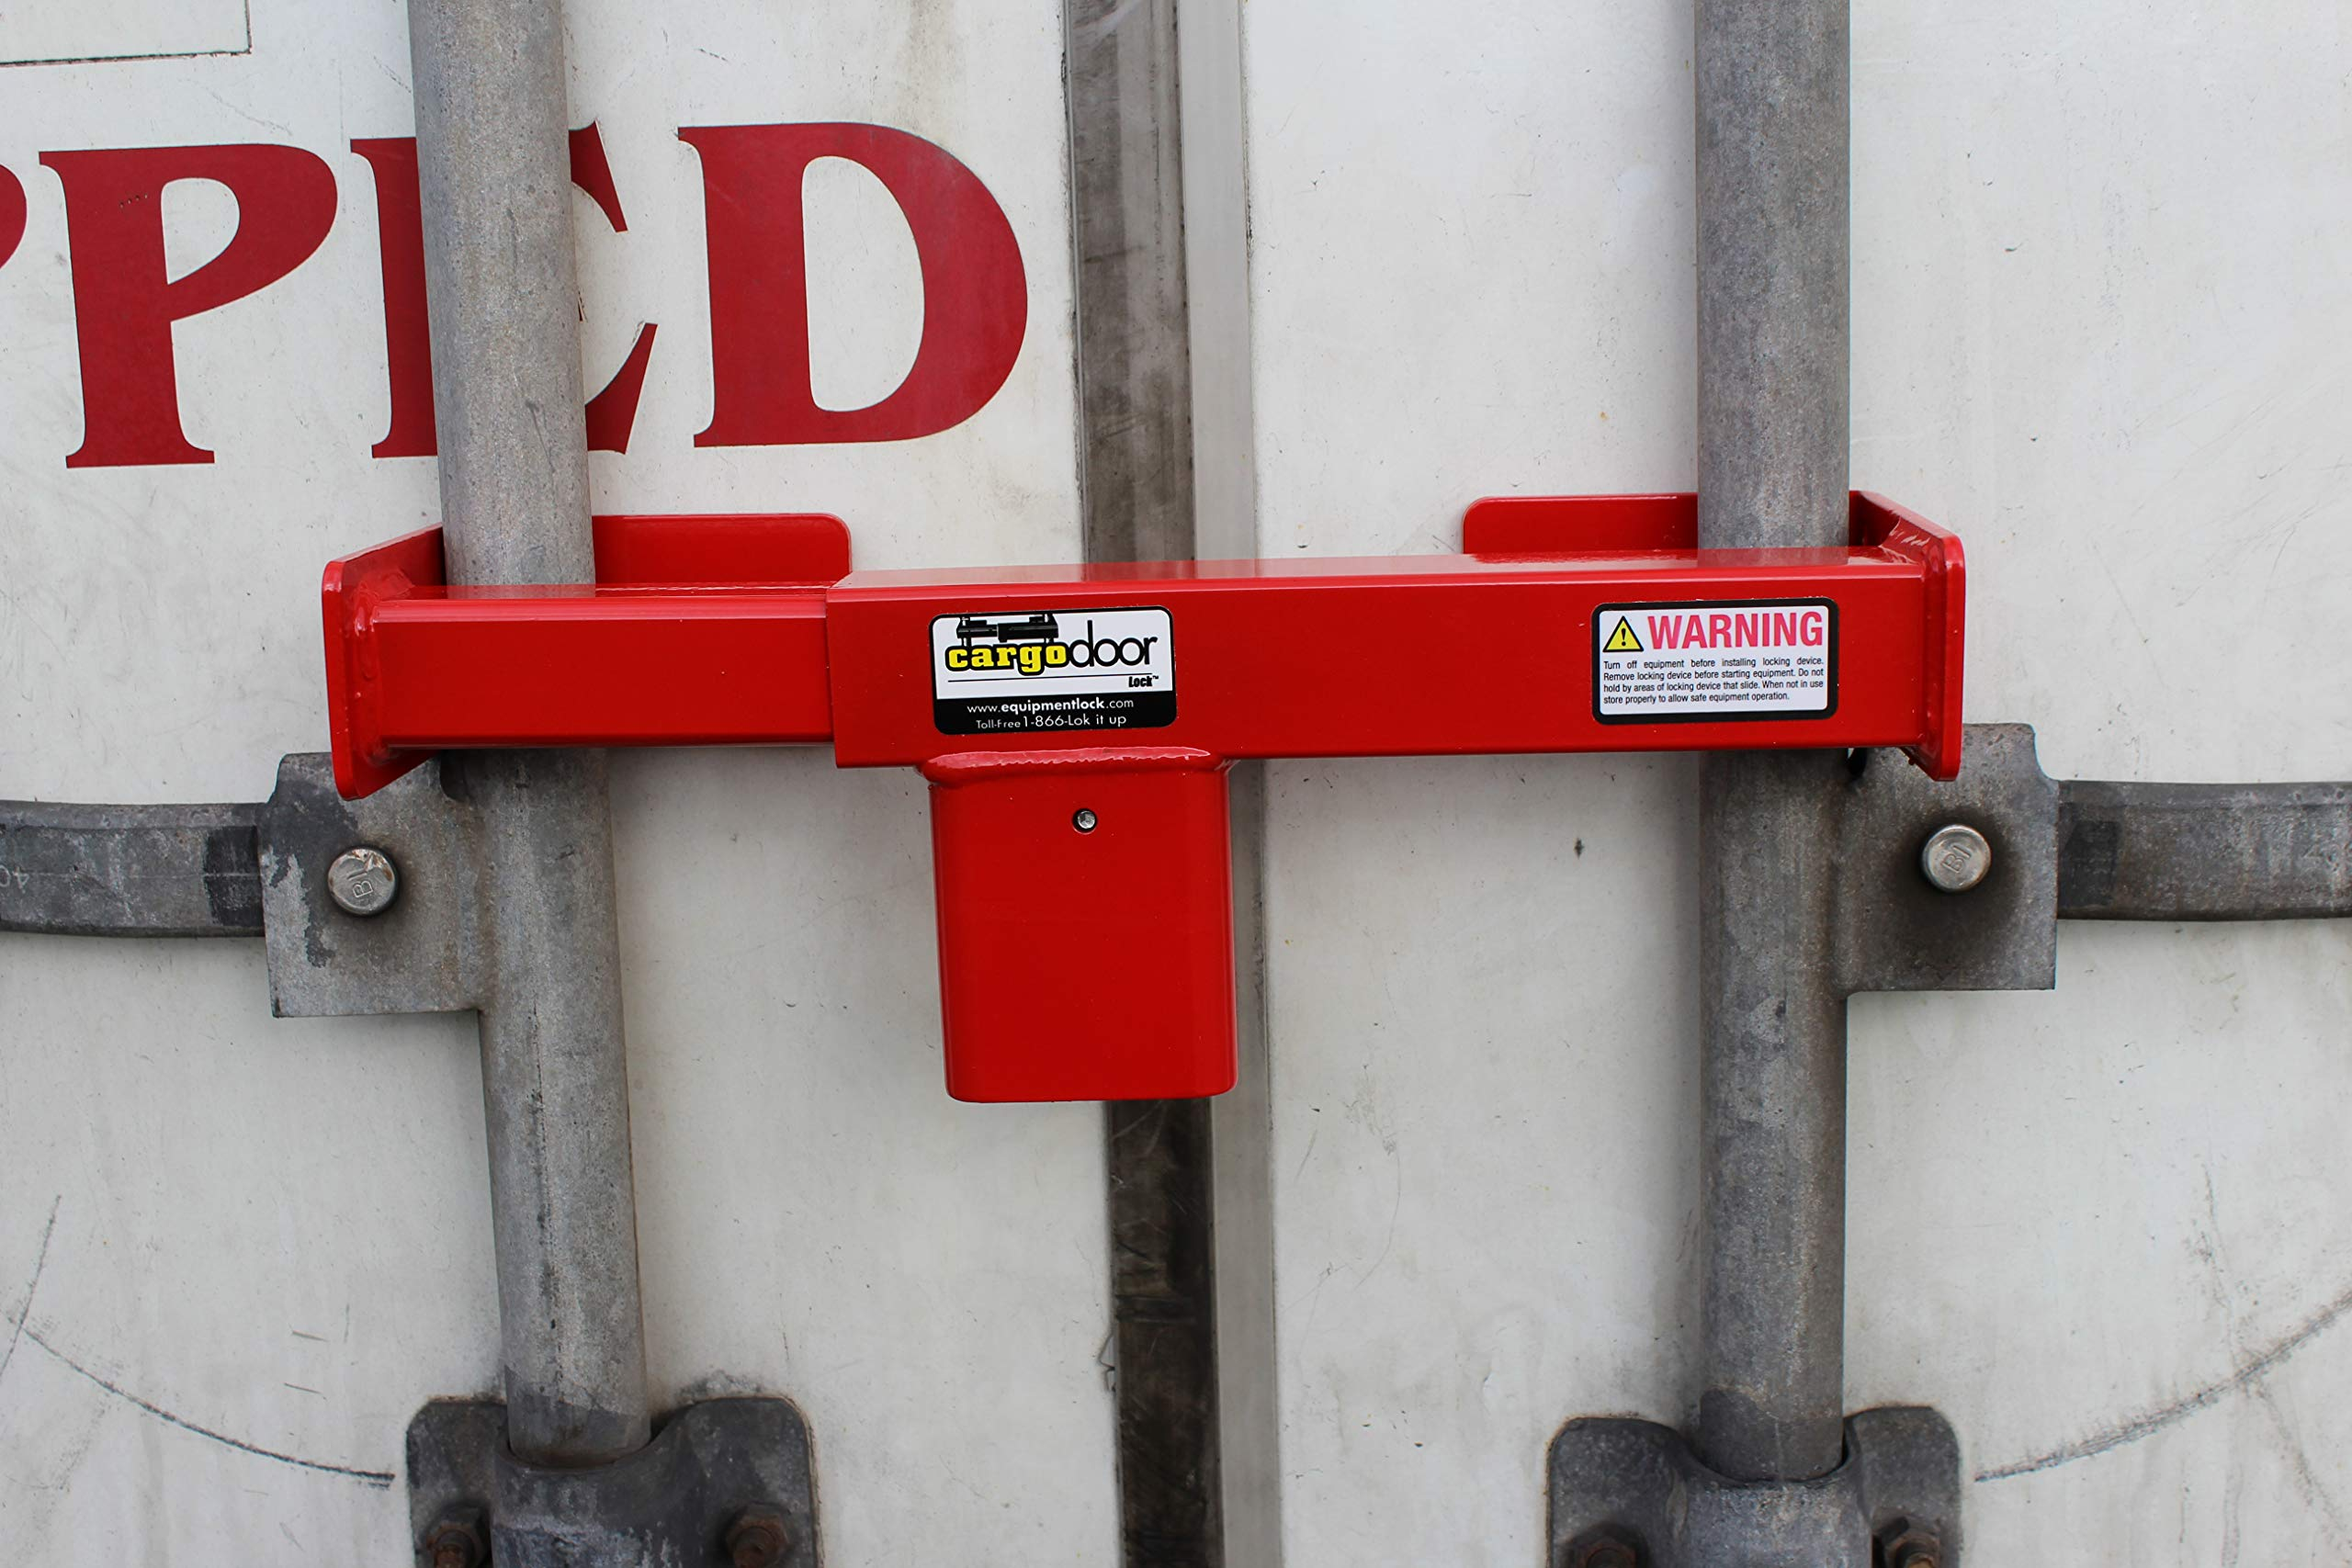 Cargo Door Lock CDL-C - Combo secures The Vertical Lock rods on Swing Doors Together on All semi Trailers, Safety Red